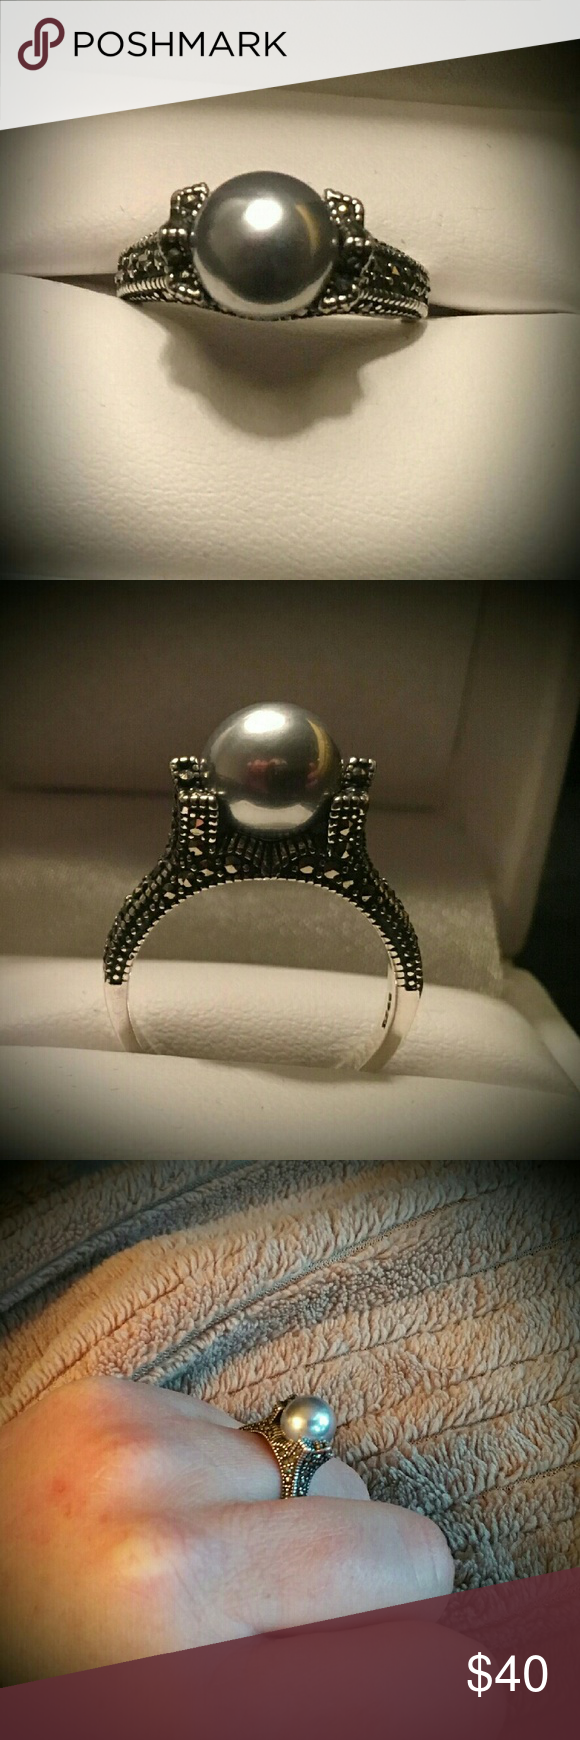 952 Sterling Silver w/Genuine Marcasite This Beautiful Sterling Silver w/Genuine Marcasite & Grey Shell Pearl. This Ring is Absolutely Beautiful fit for any occasion. I luv this Ring, It can be worn with a Gown or Jeans. It's Original by far. I have in Red as well. Jewelry Rings